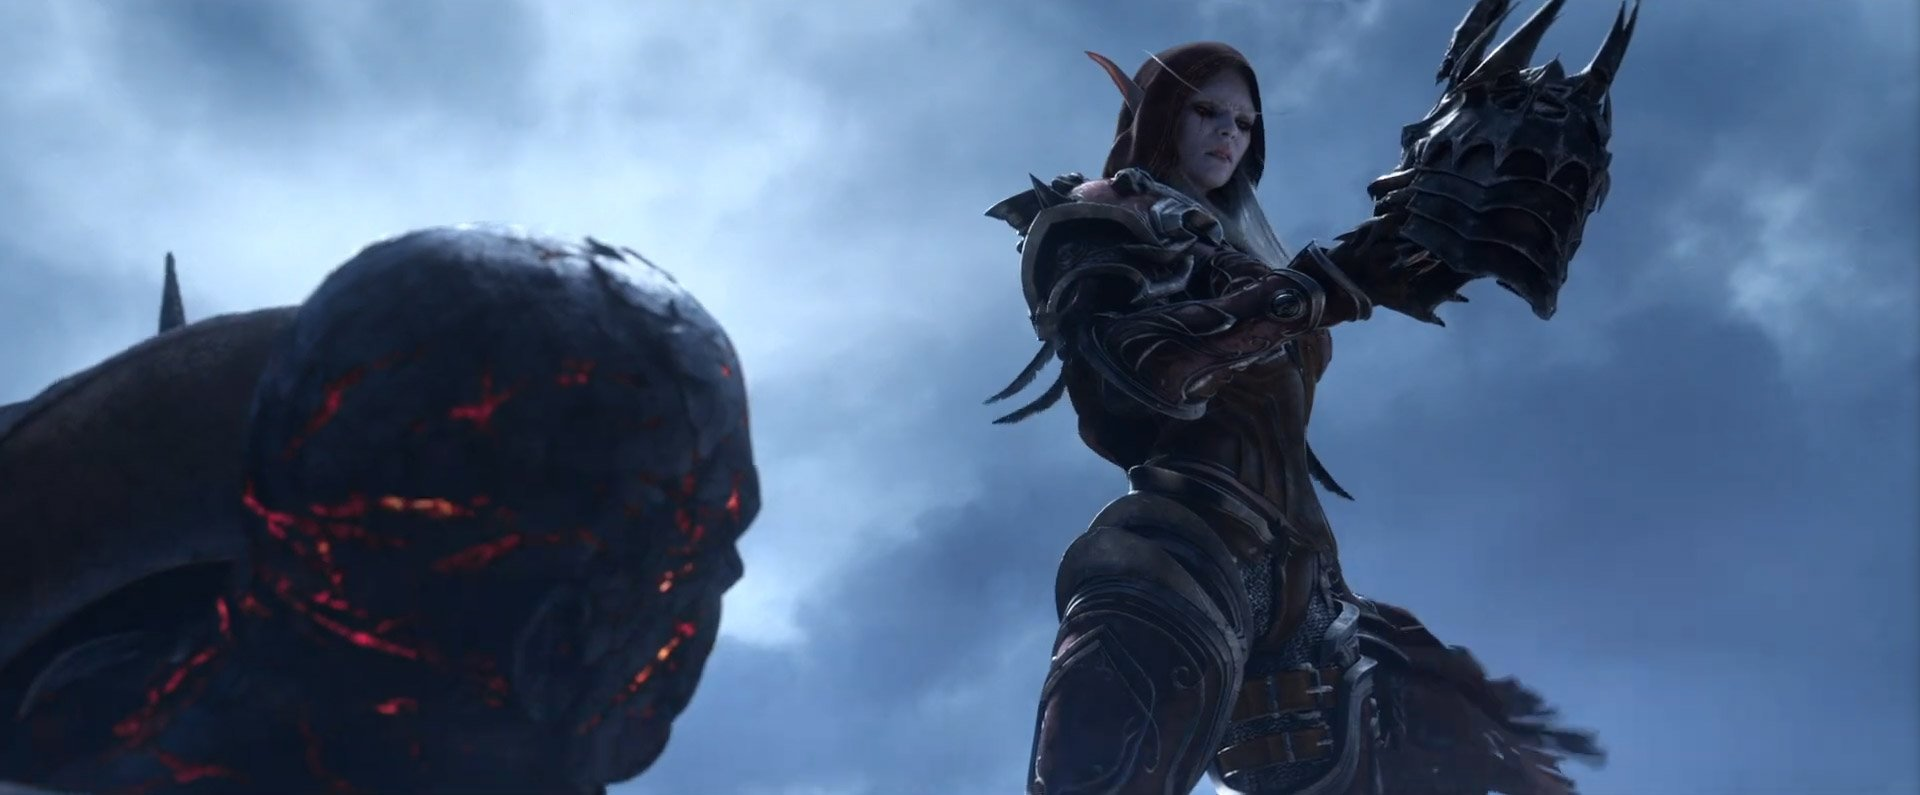 New World Of Warcraft Expansion 2020.Sylvanas Is Back For Better Or Worse For The New World Of